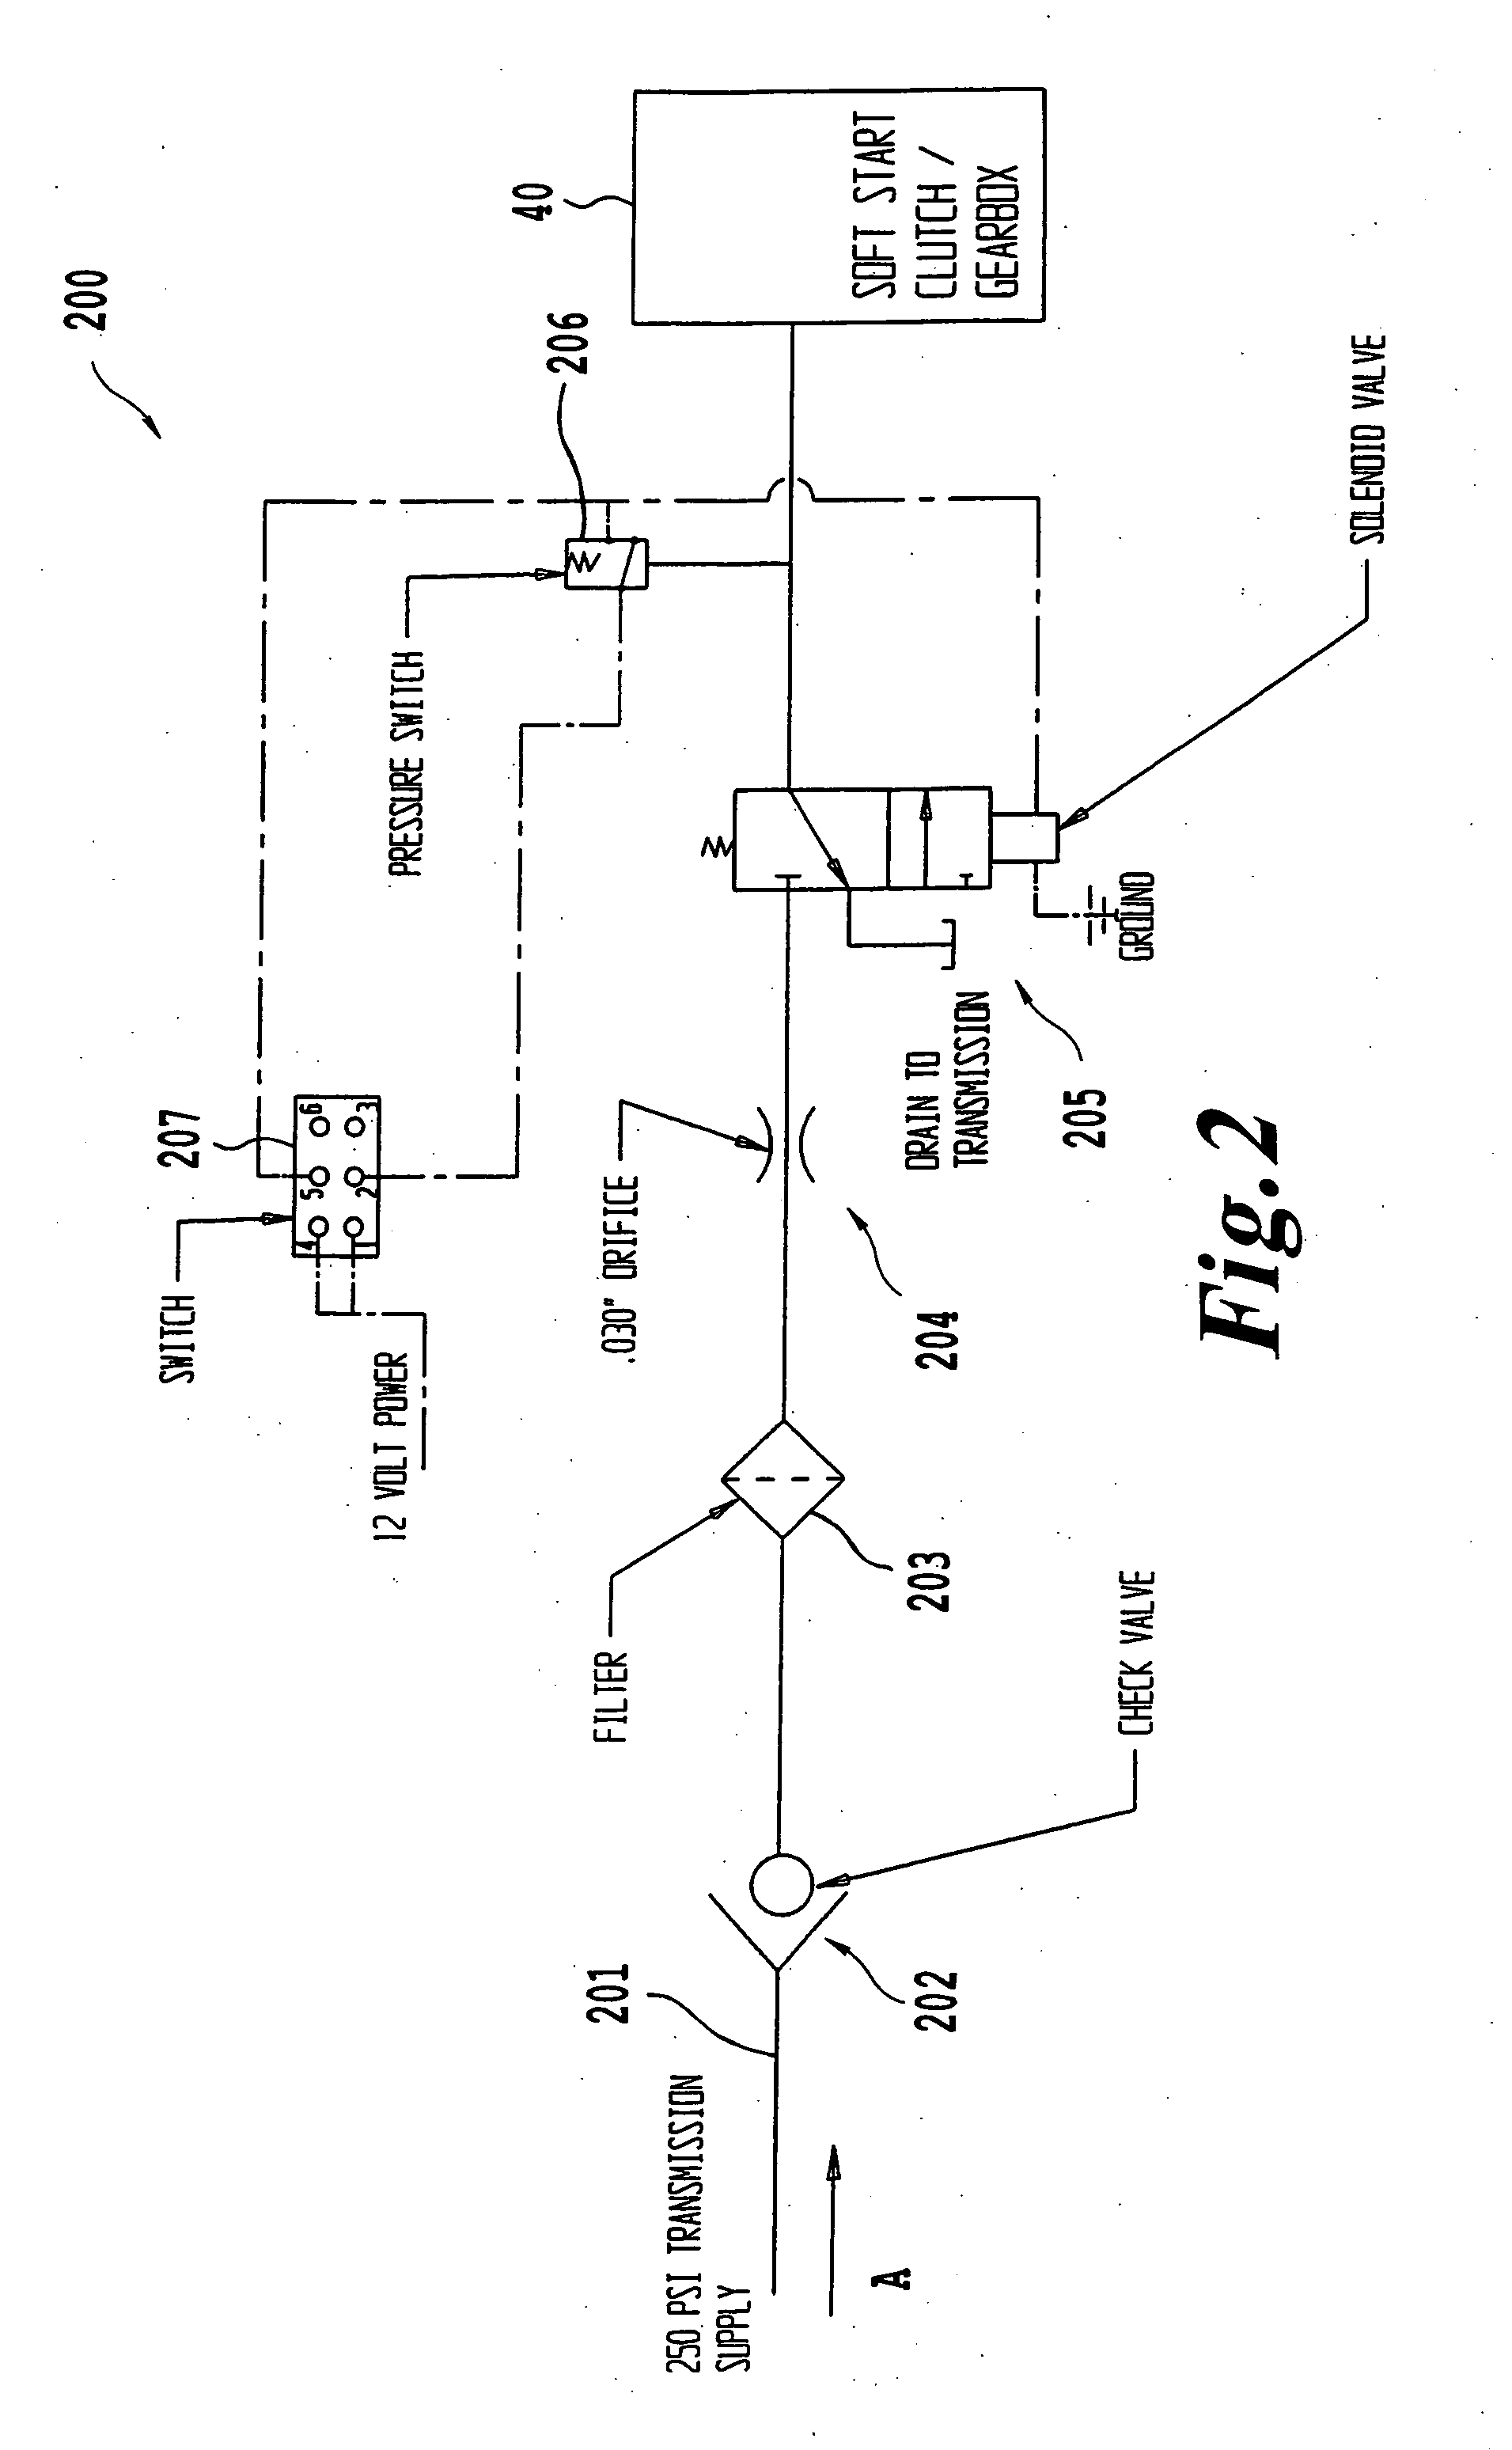 US20060214035A1 20060928 D00003 patent us20060214035 system and method of implementing a soft PTO Switch Wiring Diagram for Massey Furgeson at gsmportal.co